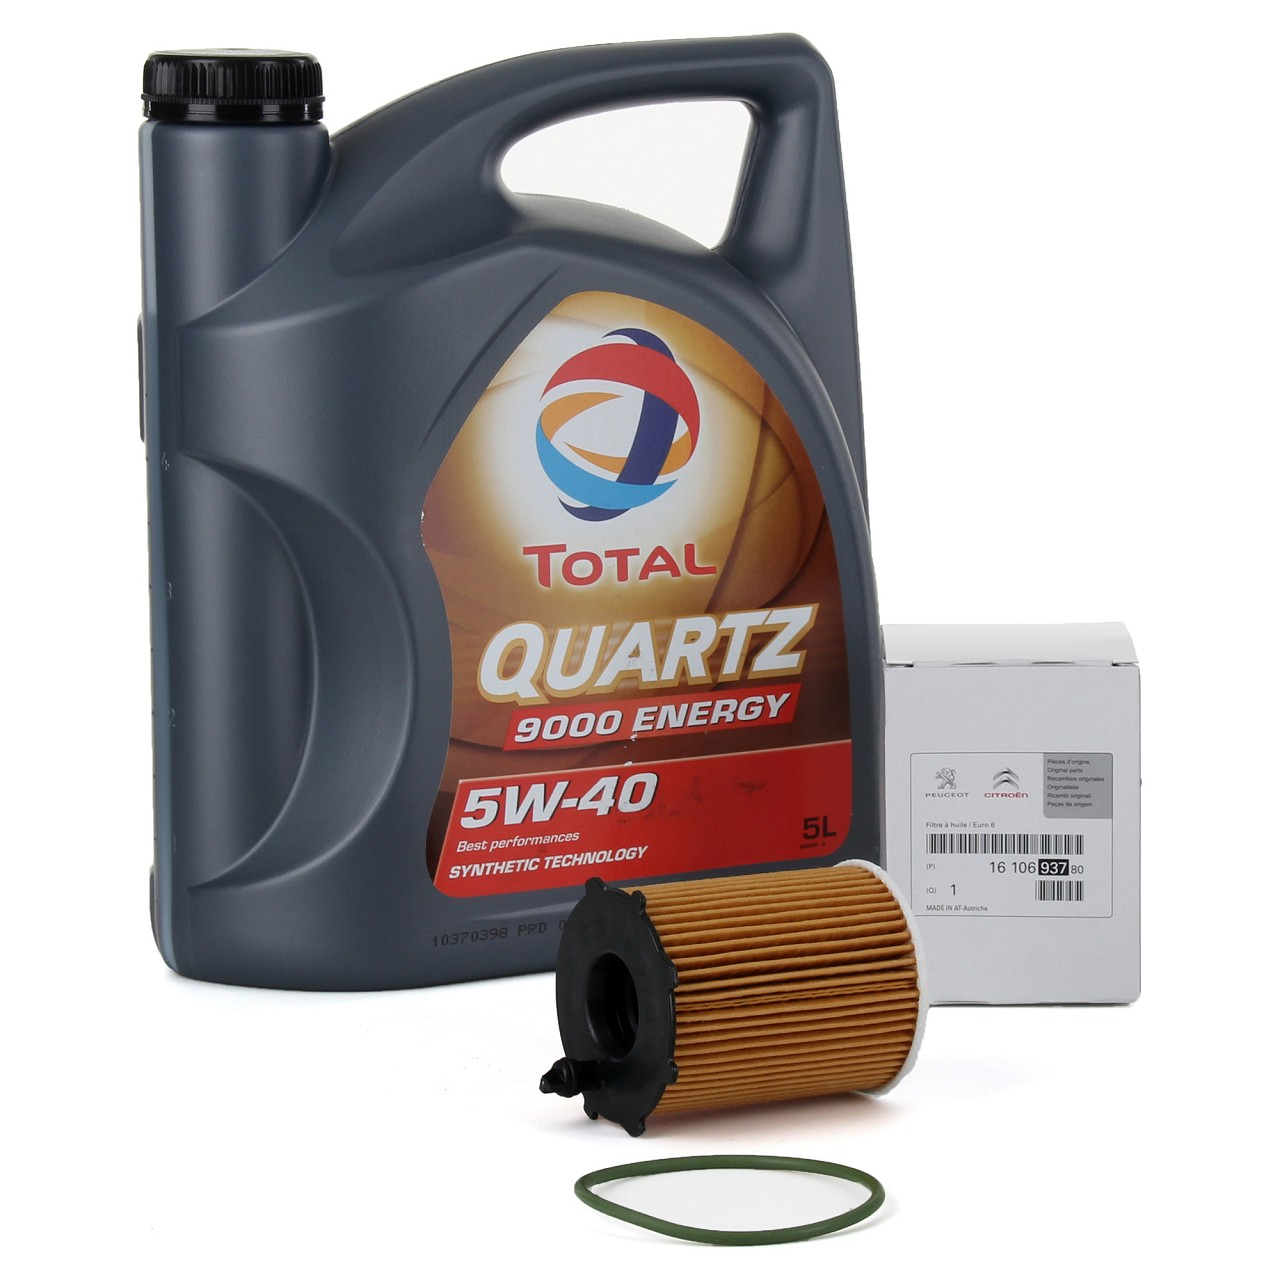 TOTAL QUARTZ 9000 ENERGY 5W-40 5 L + ORIGINAL PSA Ölfilter 1610693780